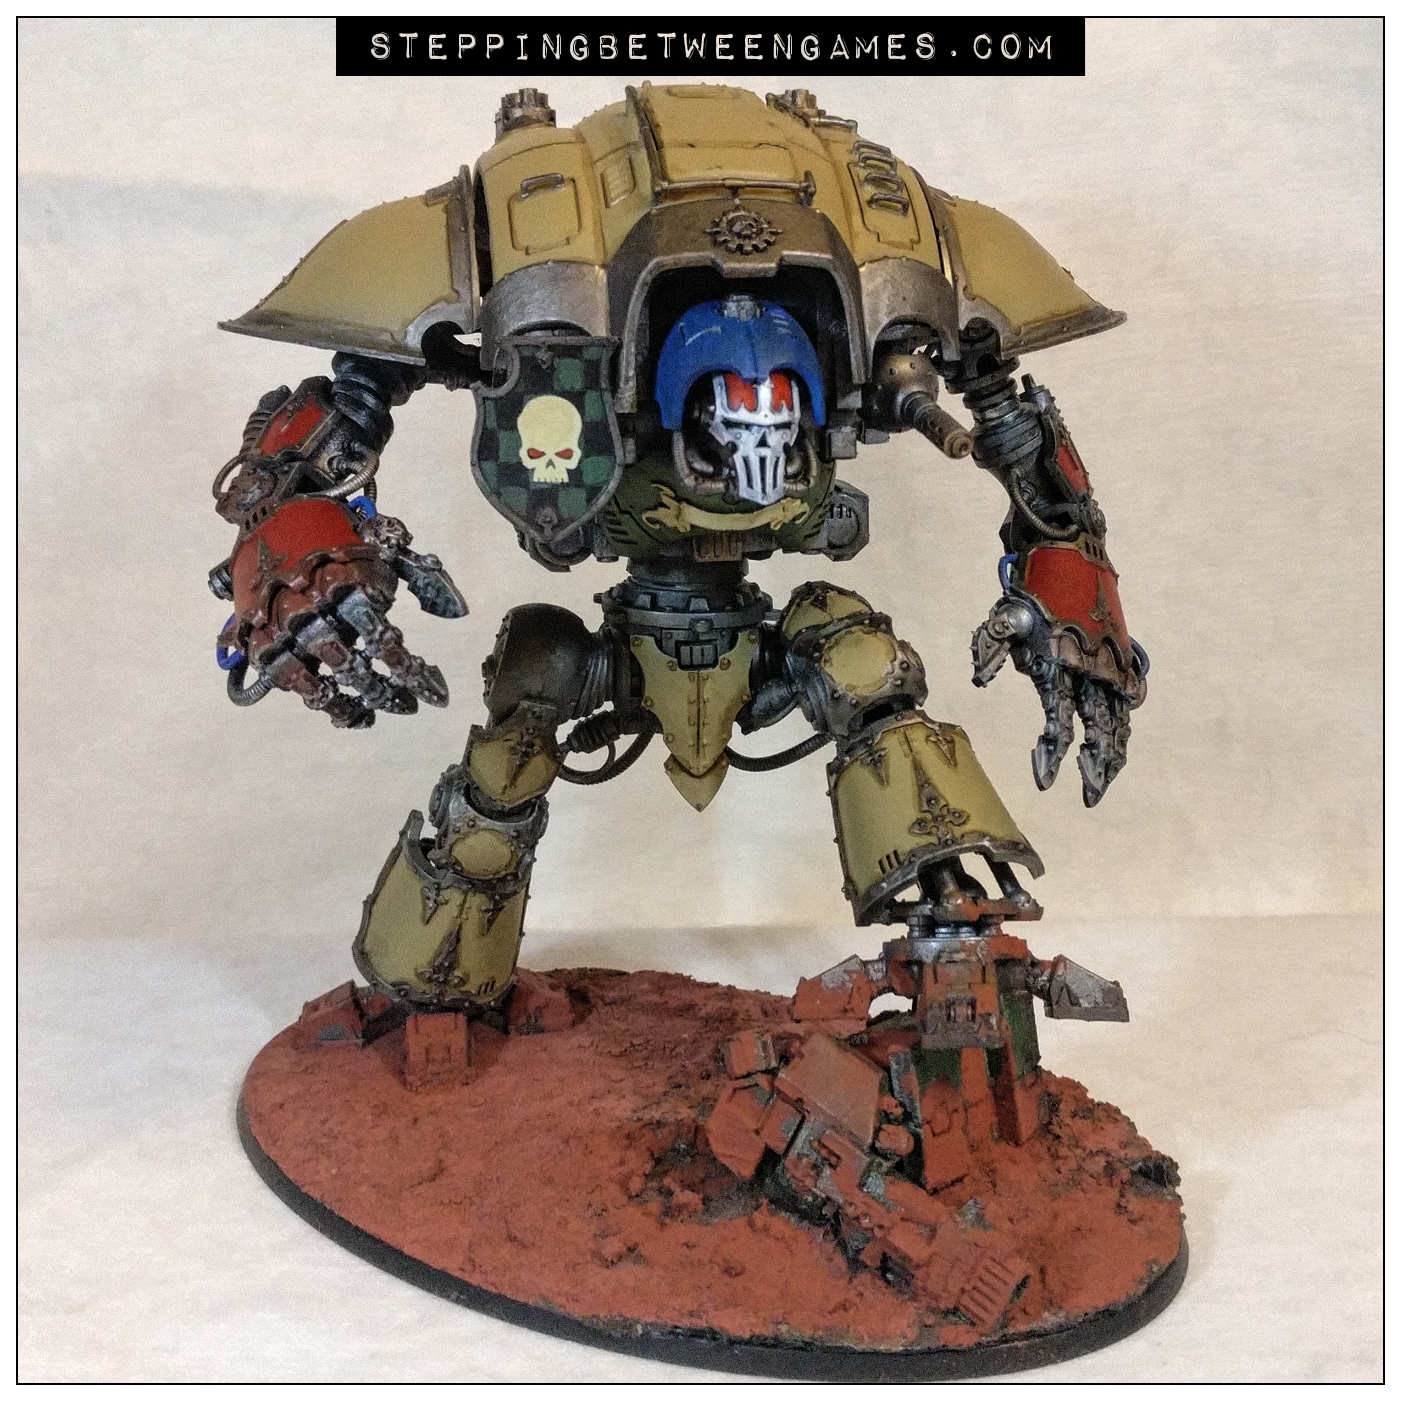 House Malinax Chaos Knight Rampager two thunderstrike gauntlets